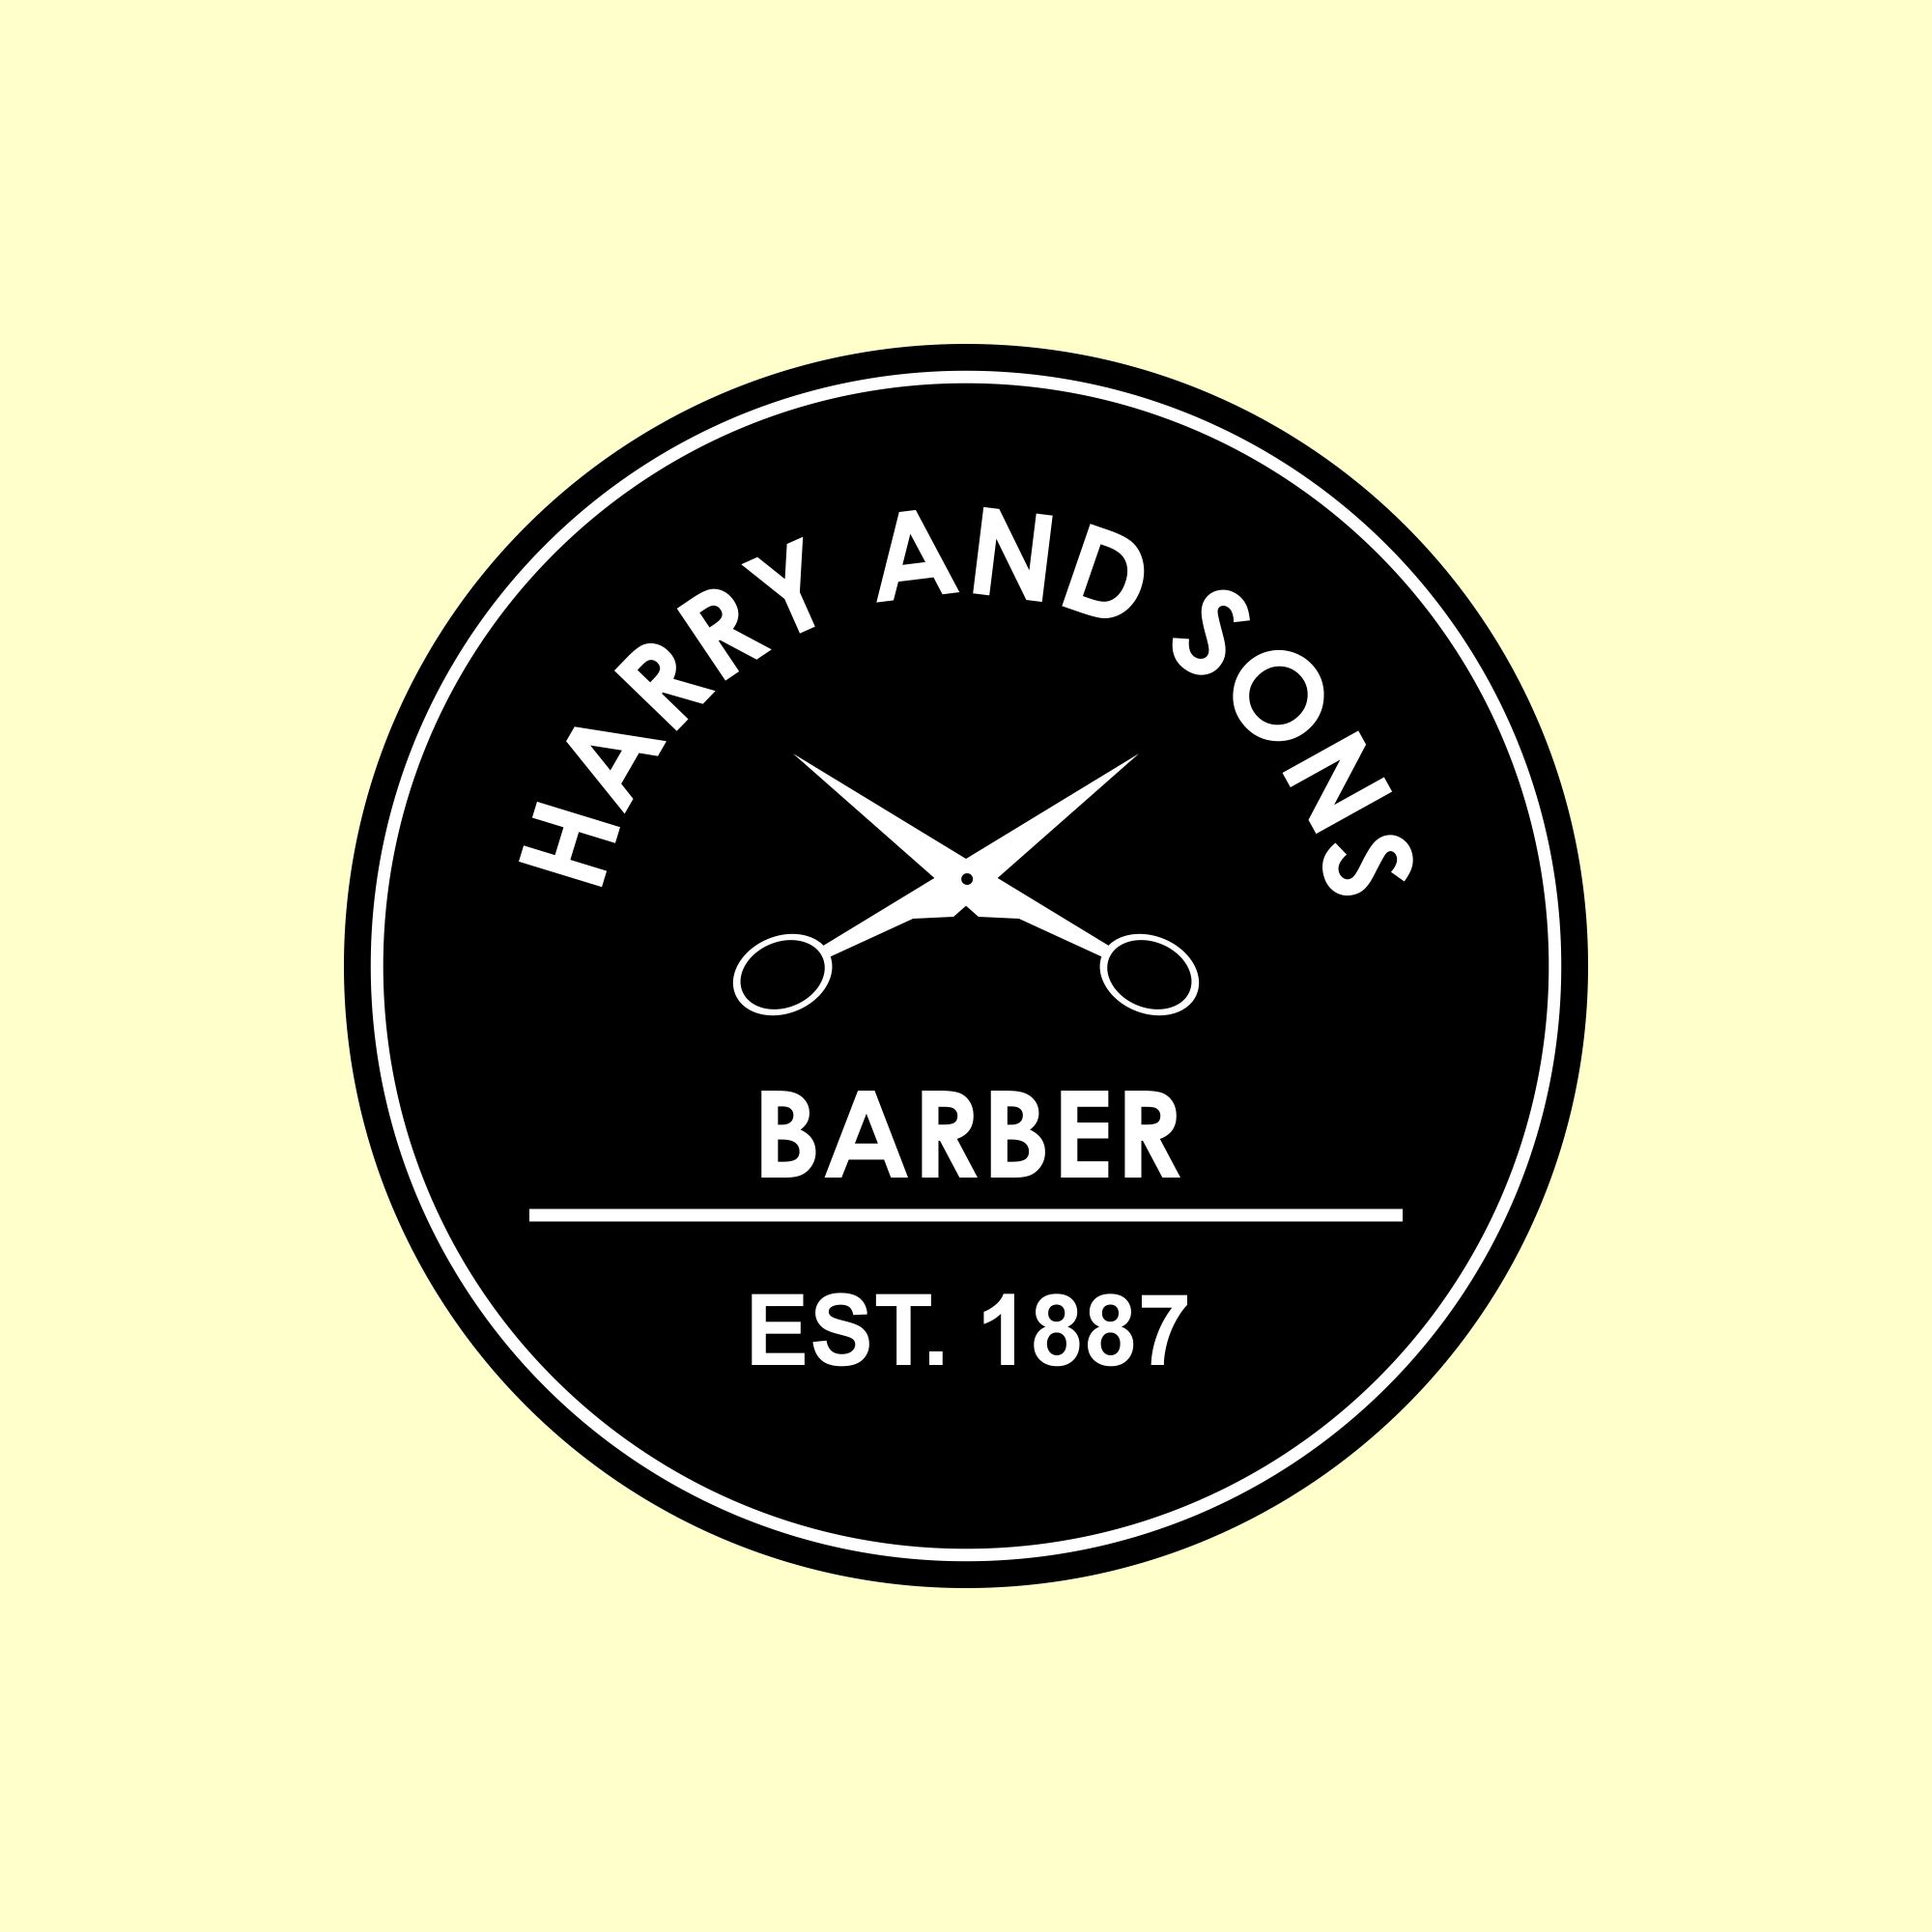 Logo Design by Megha Desai - Entry No. 79 in the Logo Design Contest Captivating Logo Design for Harry and Sons Barber.